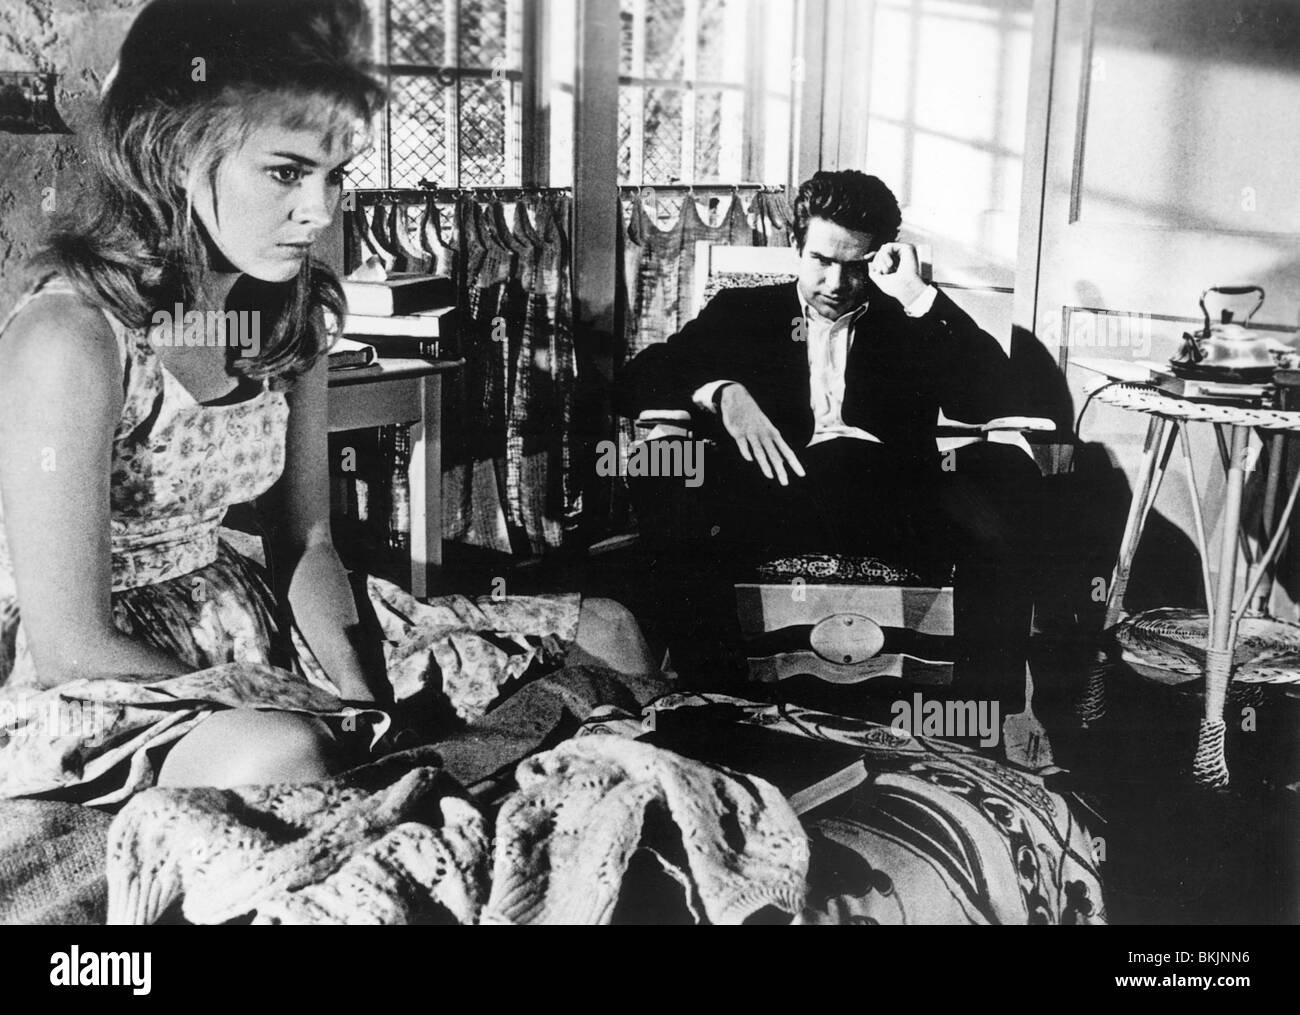 LILITH -1964 WARREN BEATTY LITH - Stock Image